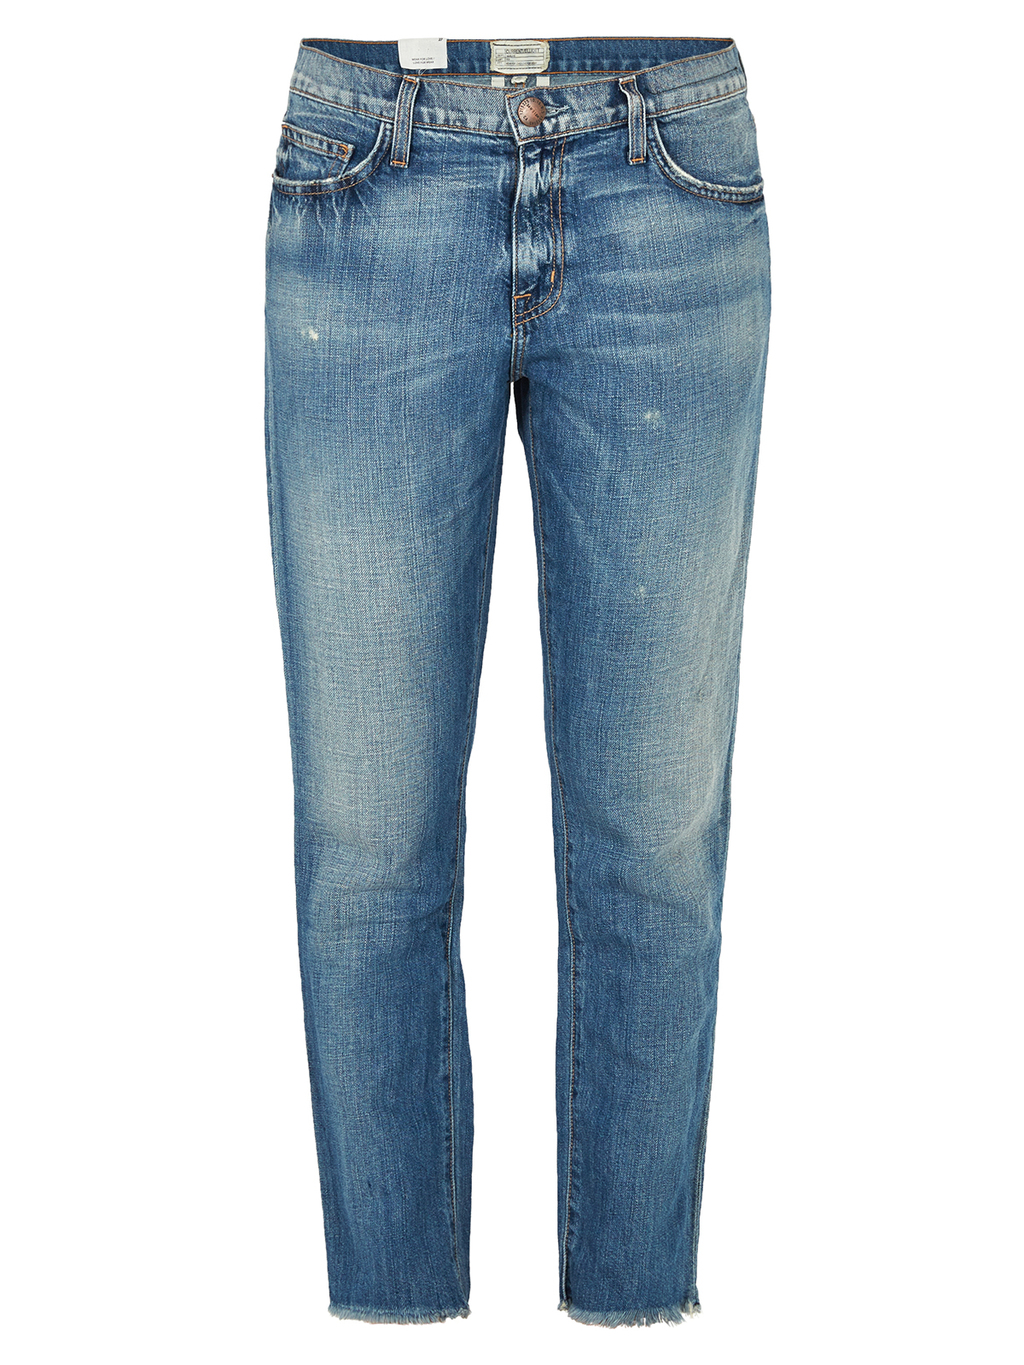 Unrolled Fling Jean - style: straight leg; length: standard; pattern: plain; pocket detail: traditional 5 pocket; waist: mid/regular rise; predominant colour: denim; occasions: casual; fibres: cotton - stretch; jeans detail: washed/faded; texture group: denim; pattern type: fabric; season: s/s 2016; wardrobe: basic